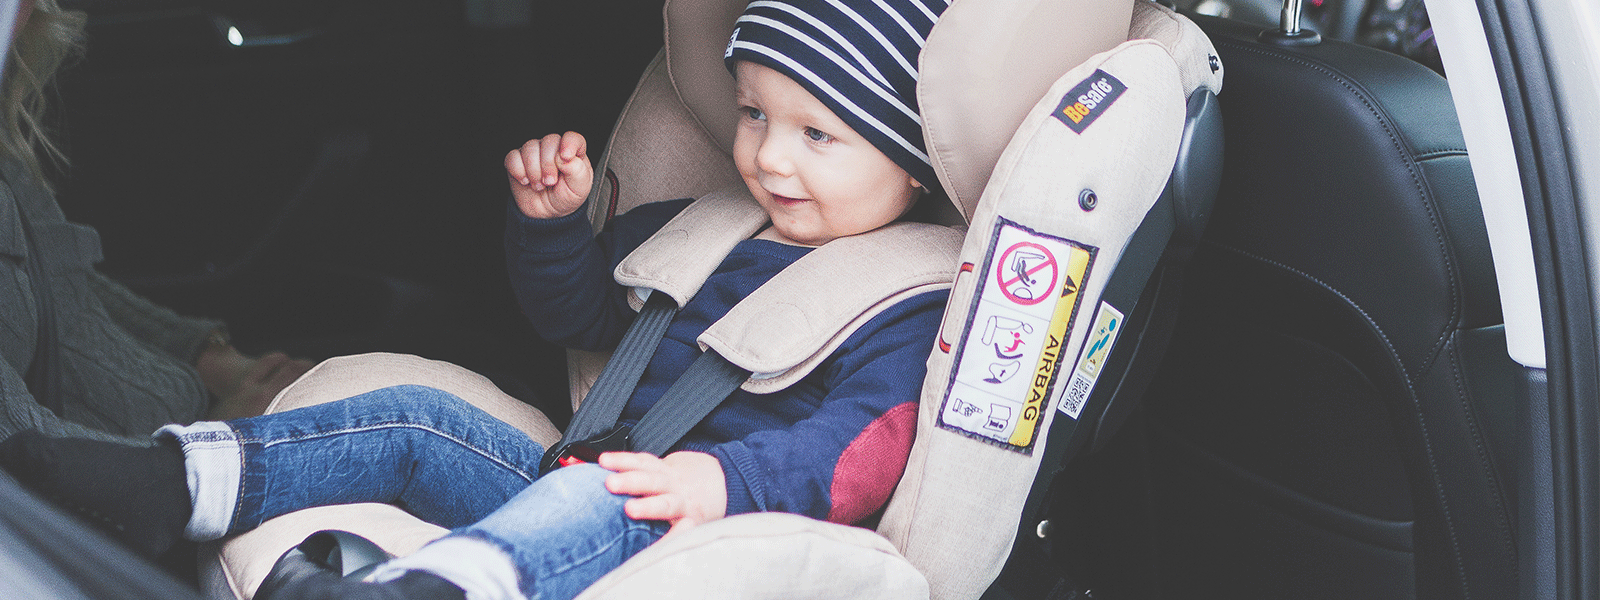 Rear Facing Car Seat Age 4 Besafe Misconceptions About Rear Facing Car Seats